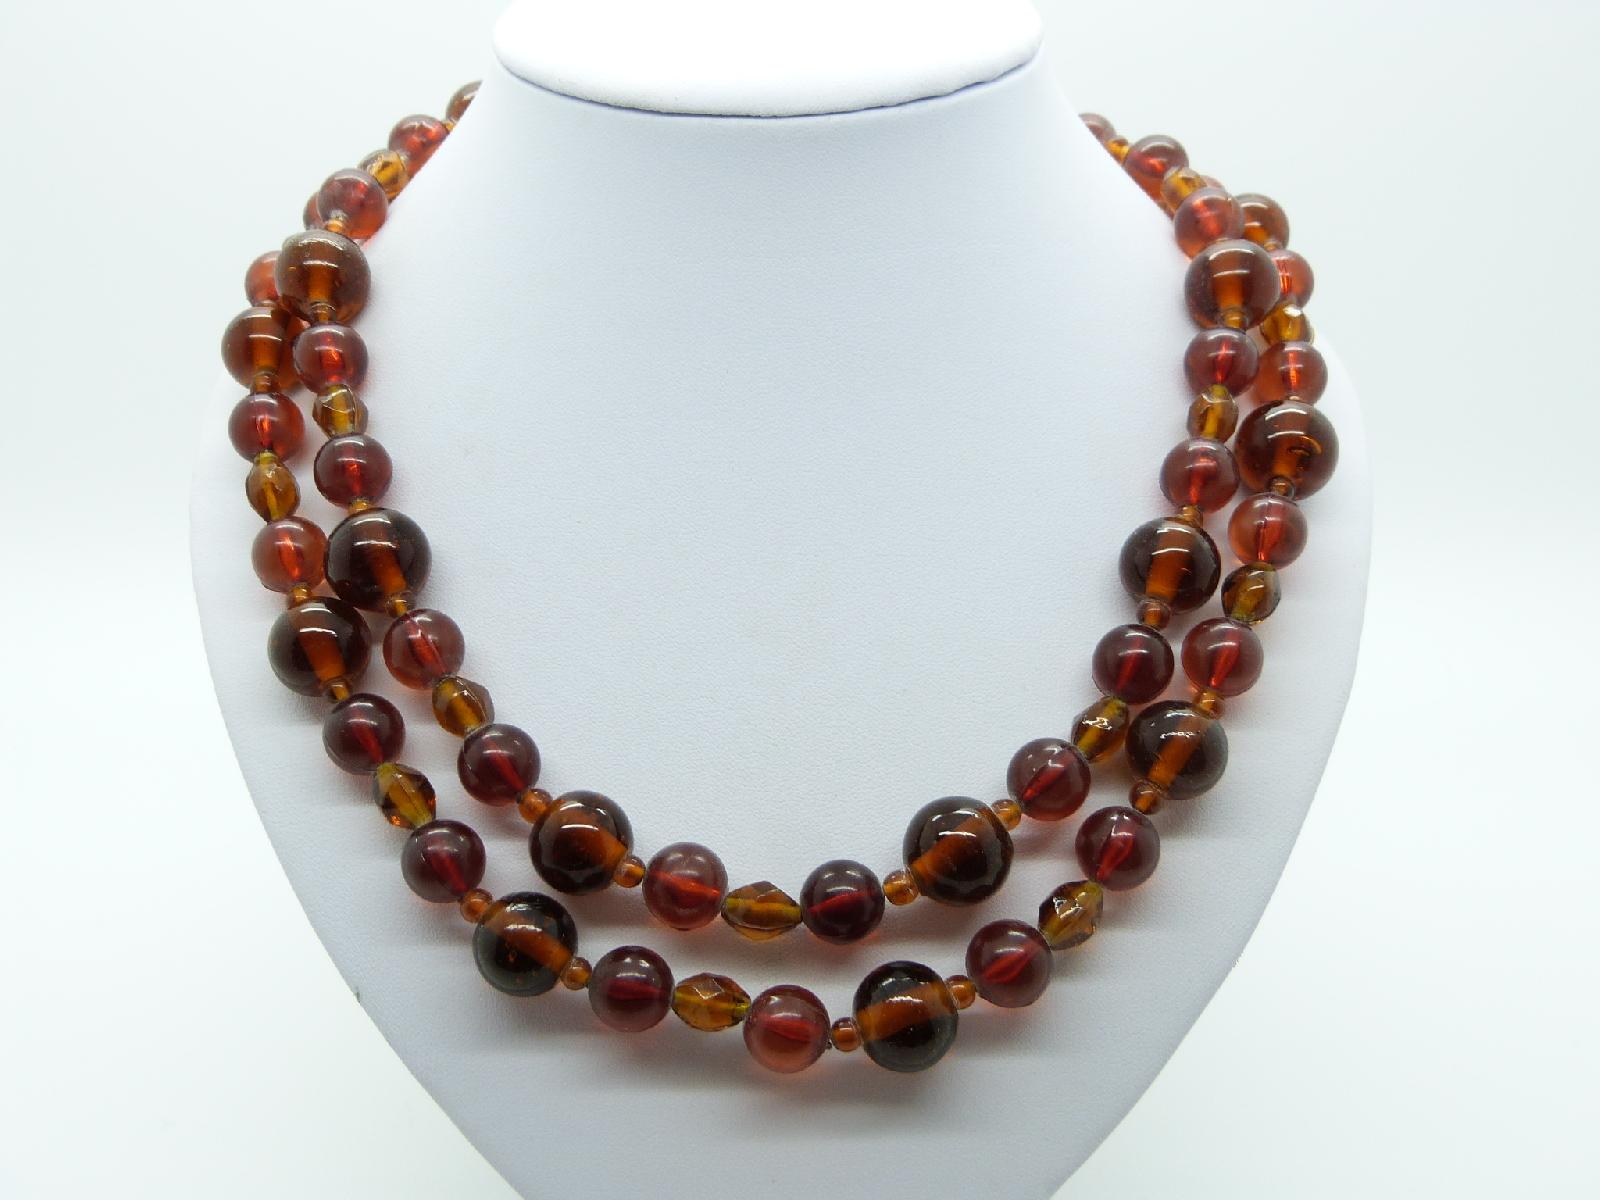 £16.00 - Vintage 80s Attractive Long Two Tone Amber Glass Bead Necklace 106cms